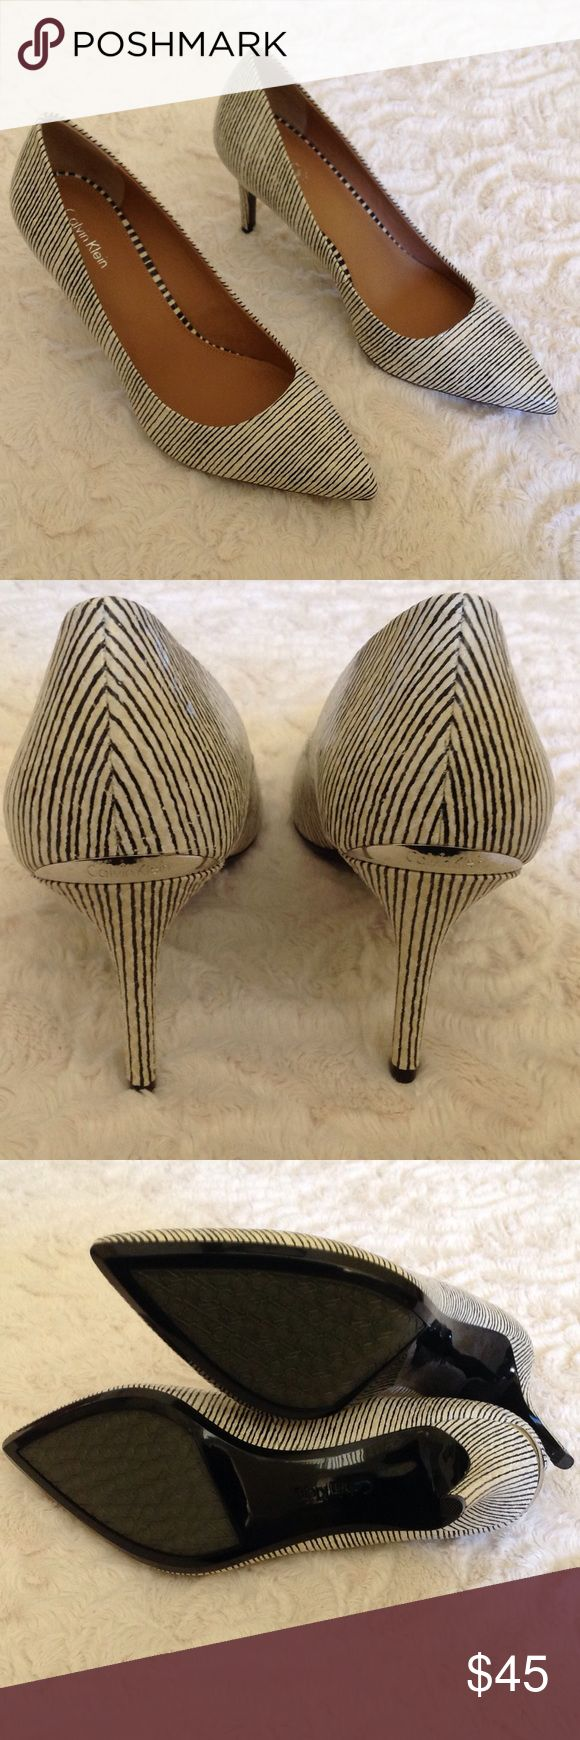 NWOB Calvin Klein Gayle Striped Pumps size shoes These shoes are new without the box.  Leather,3 inch heel. Calvin Klein Shoes Heels